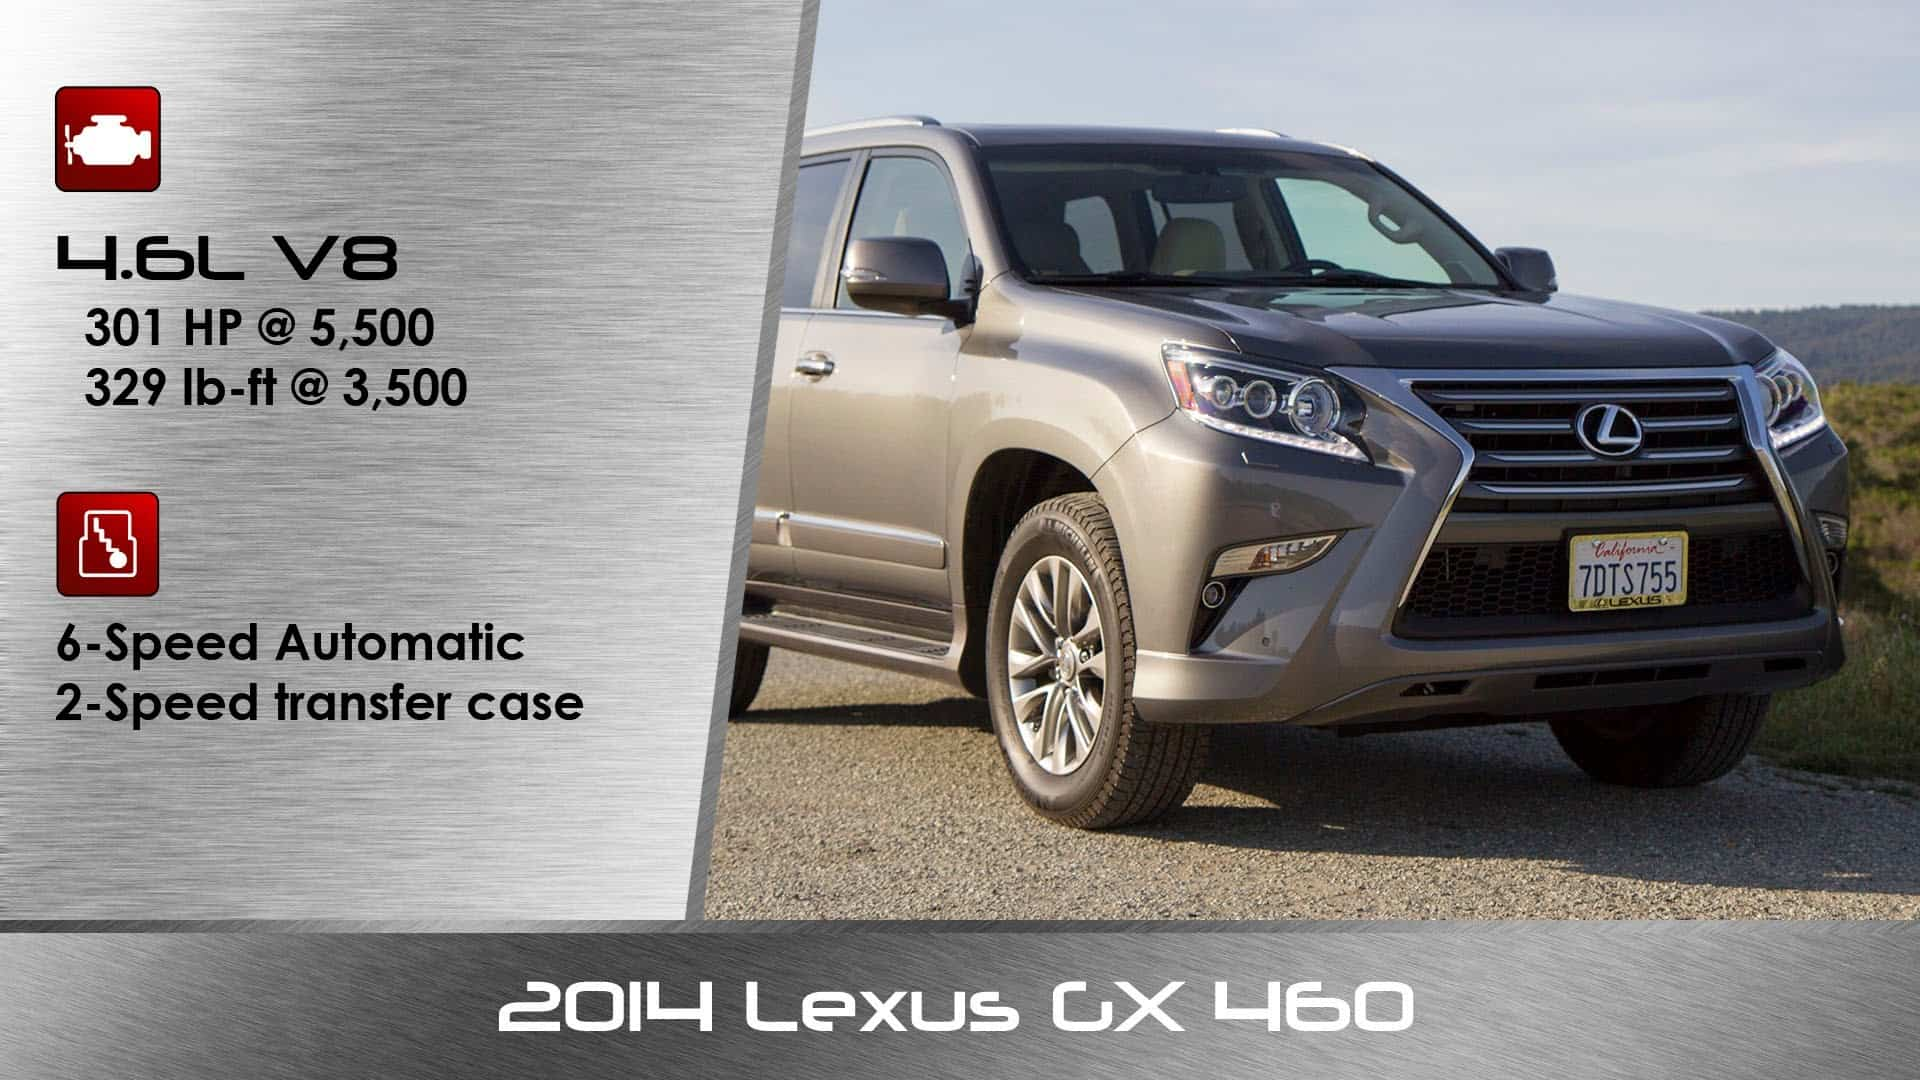 2014 lexus gx 460 car review video in lakeland florida. Black Bedroom Furniture Sets. Home Design Ideas